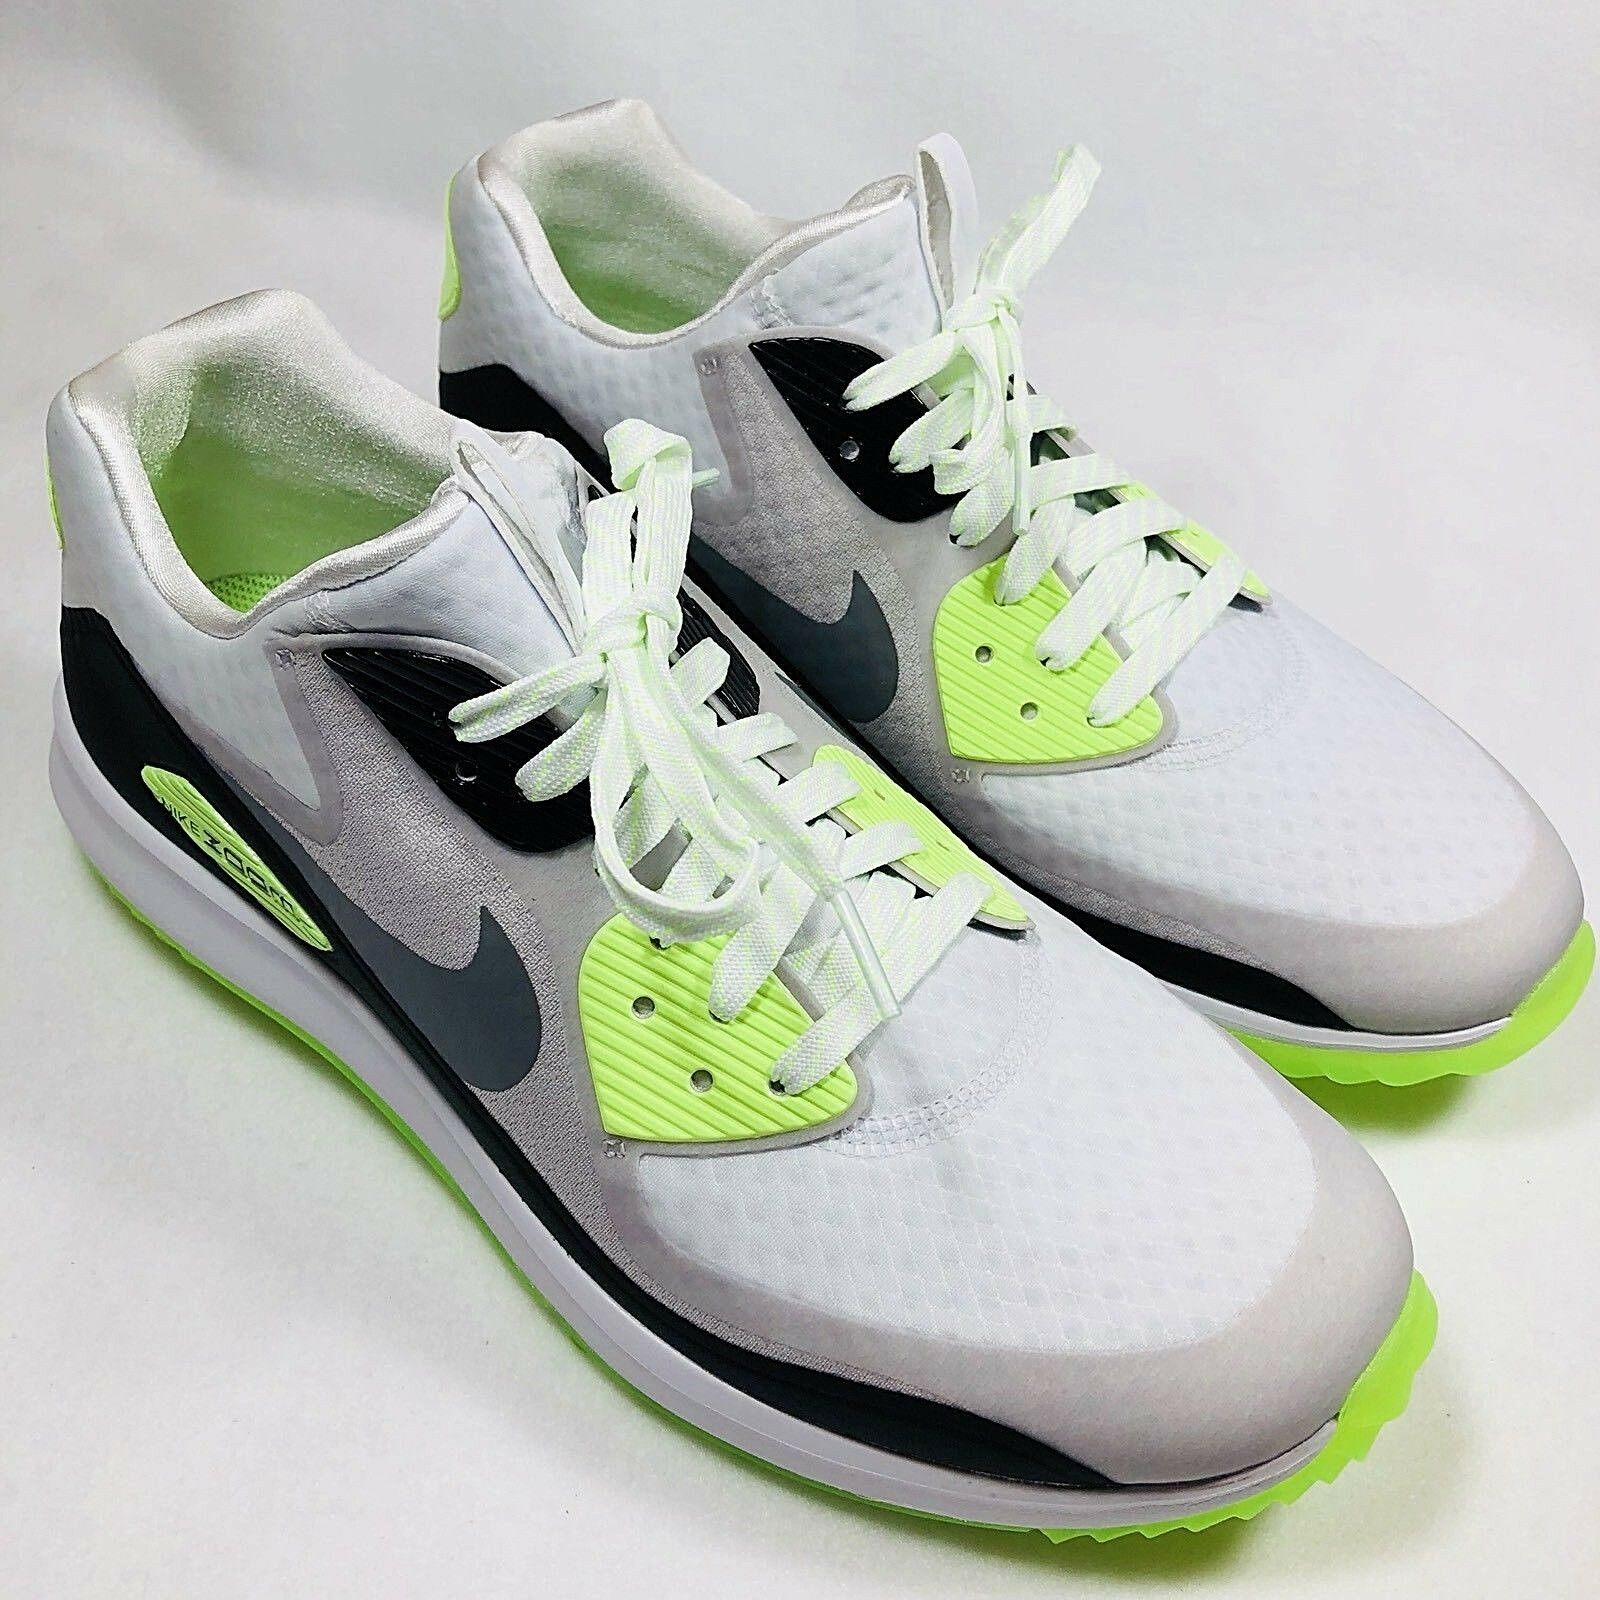 New Nike Air Zoom 90 IT Rory McIlroy 9 Golf Shoes Men's Sz 9 McIlroy (844569-102) 621067